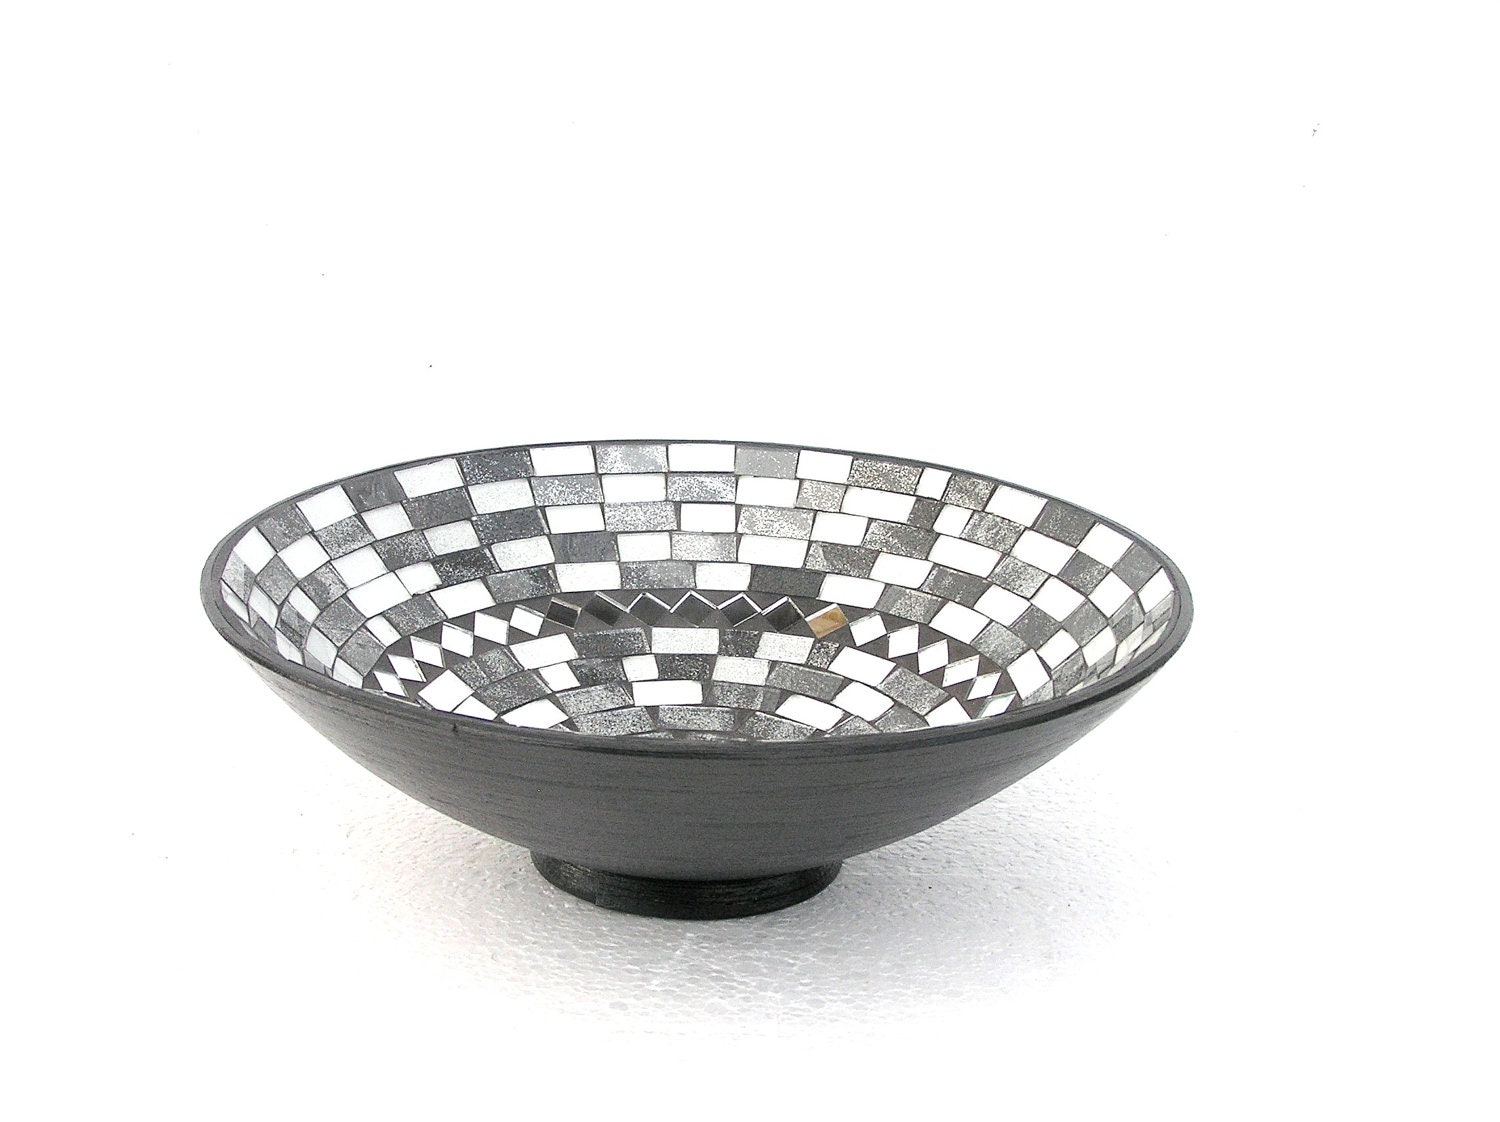 Black and white fruit bowl mosaic modern home decor classical for Mosaic home decor